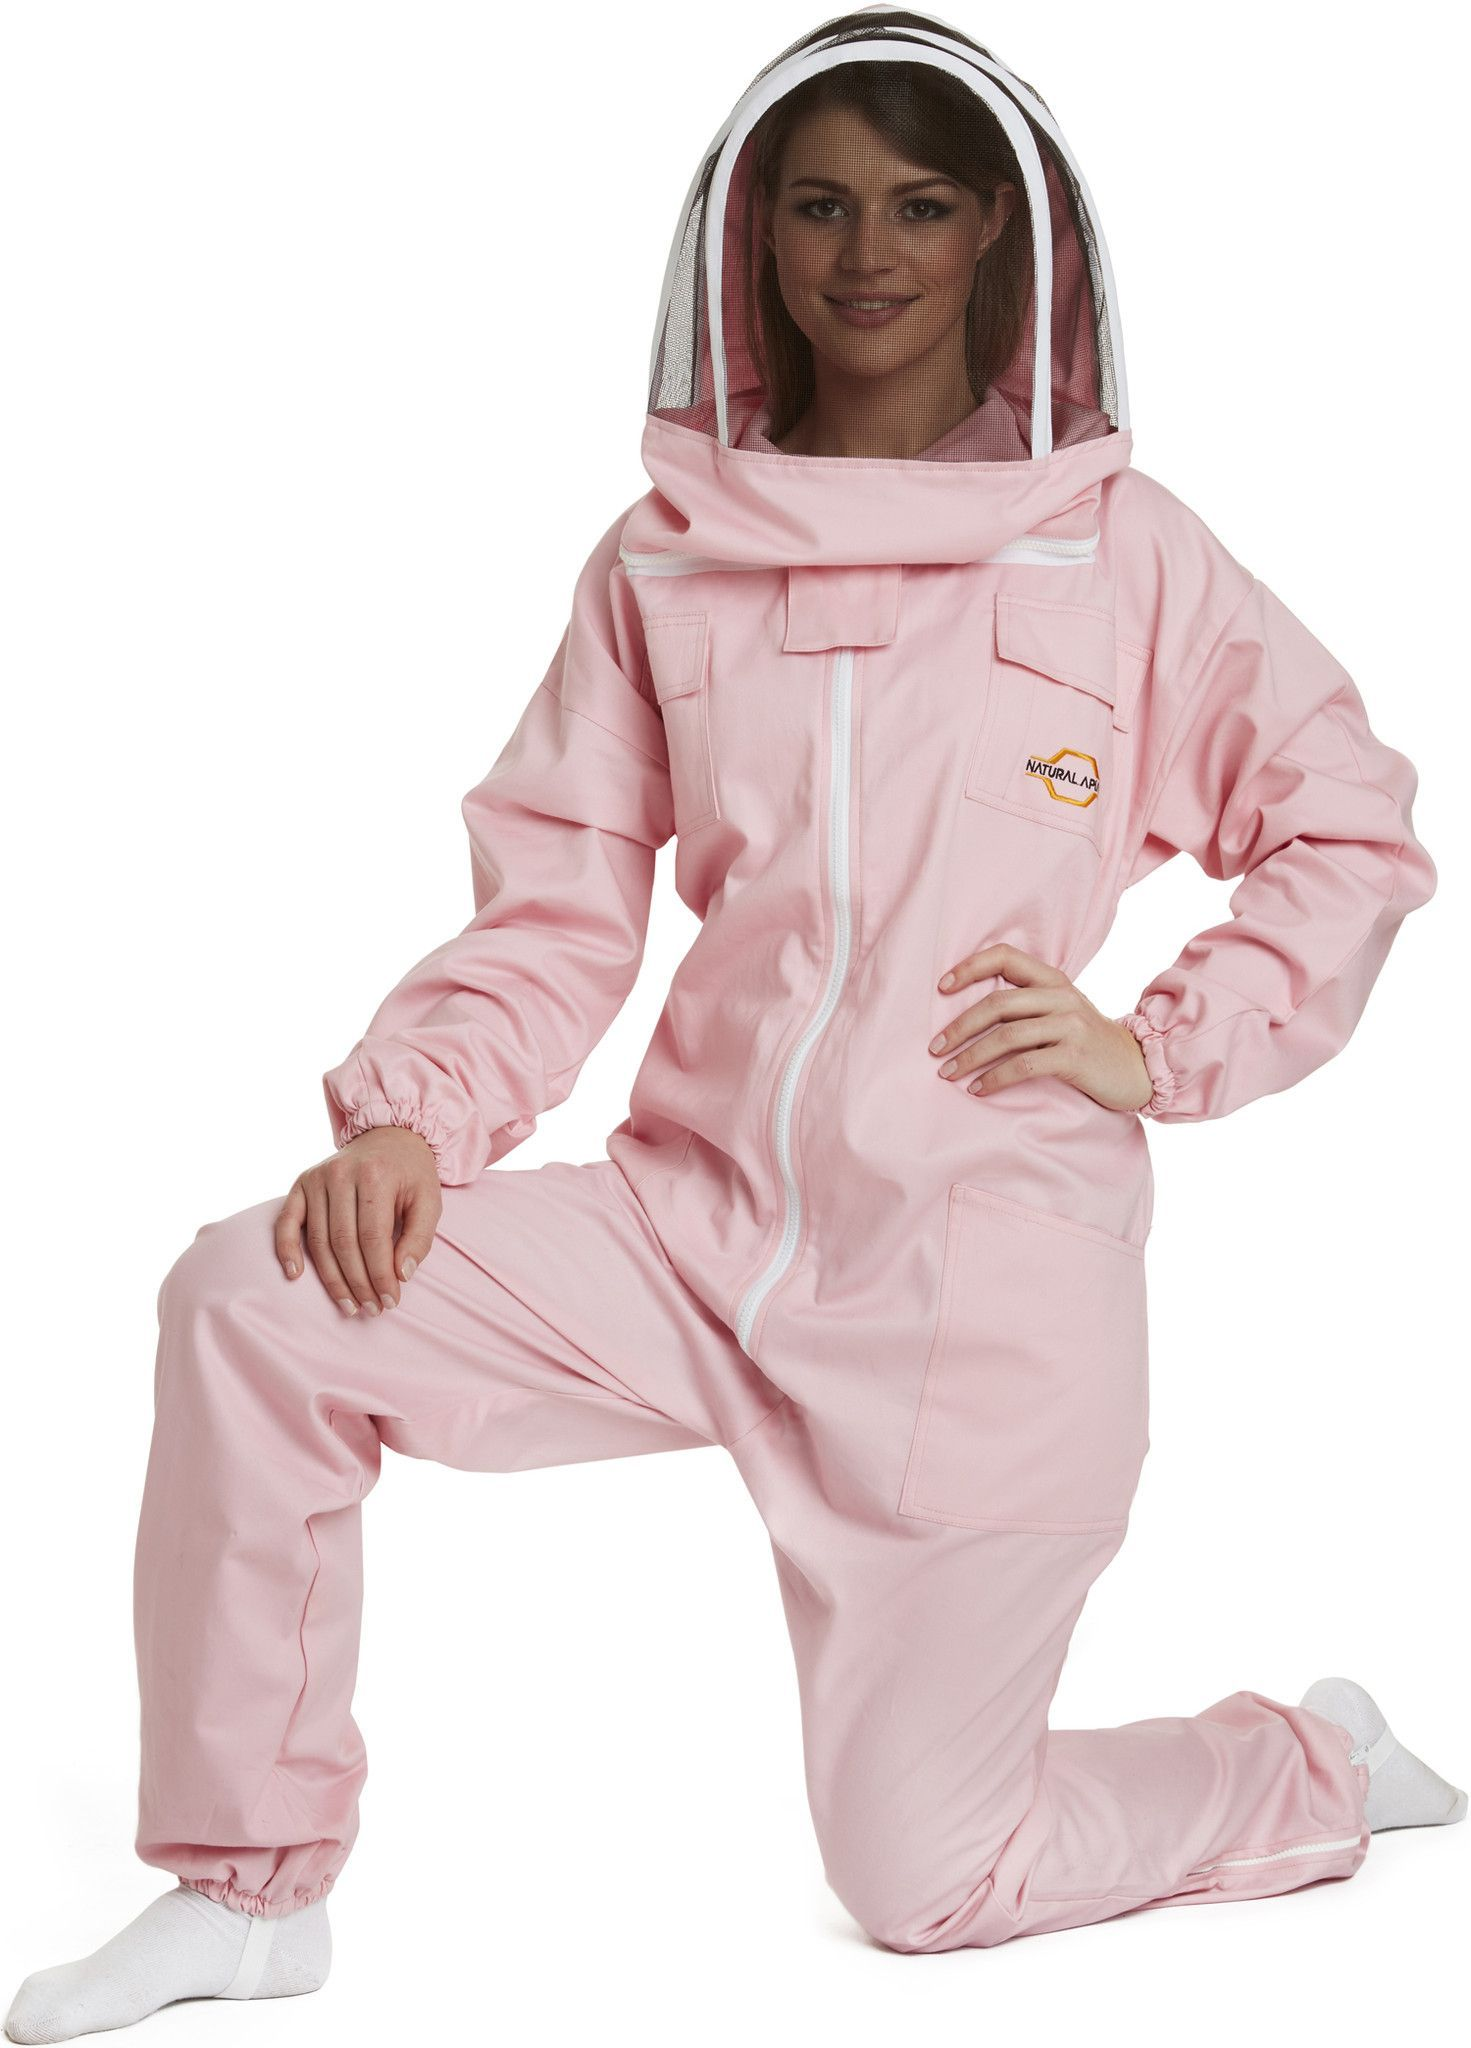 APIARIST Beekeeping Suit - Fencing Veil - Total Protection for Professional & Beginner Beekeepers